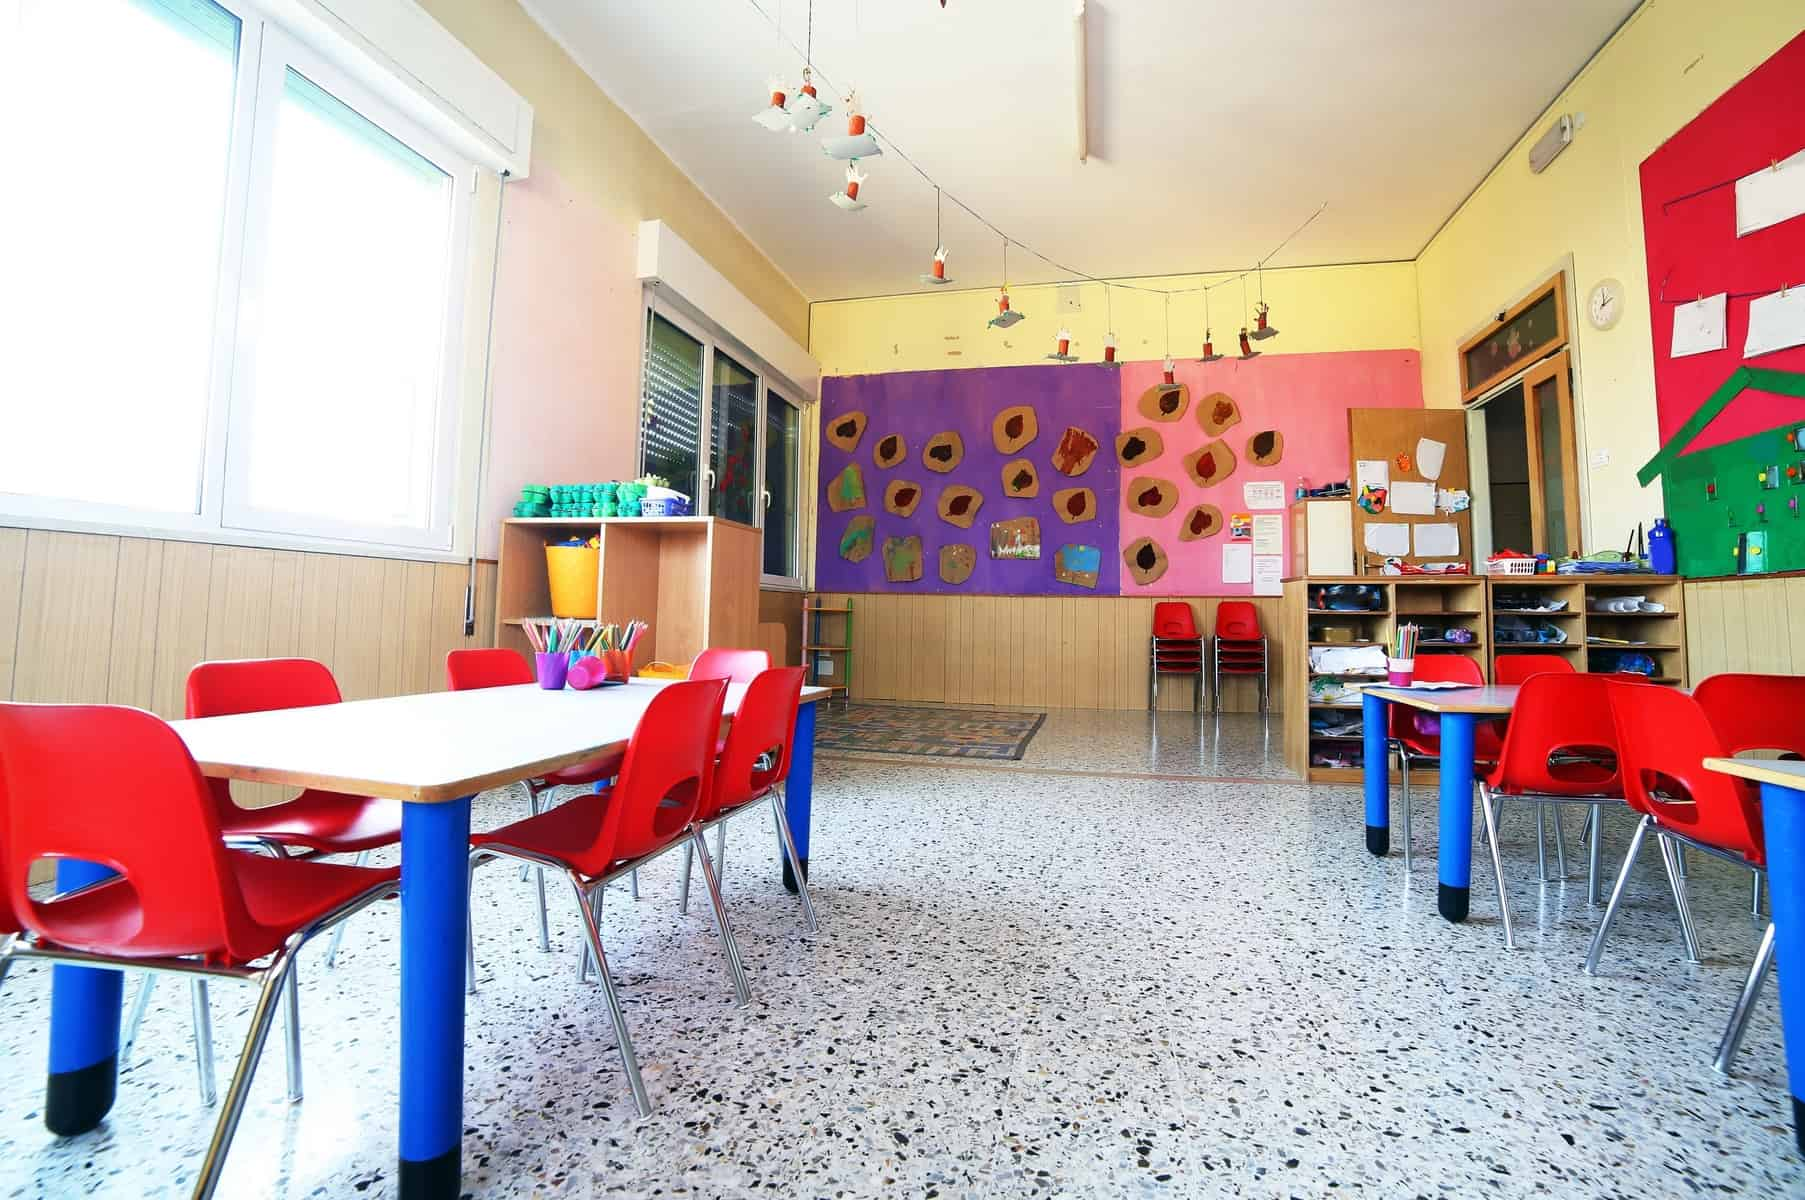 Kindergarten classroom with colorful furniture and art on the walls